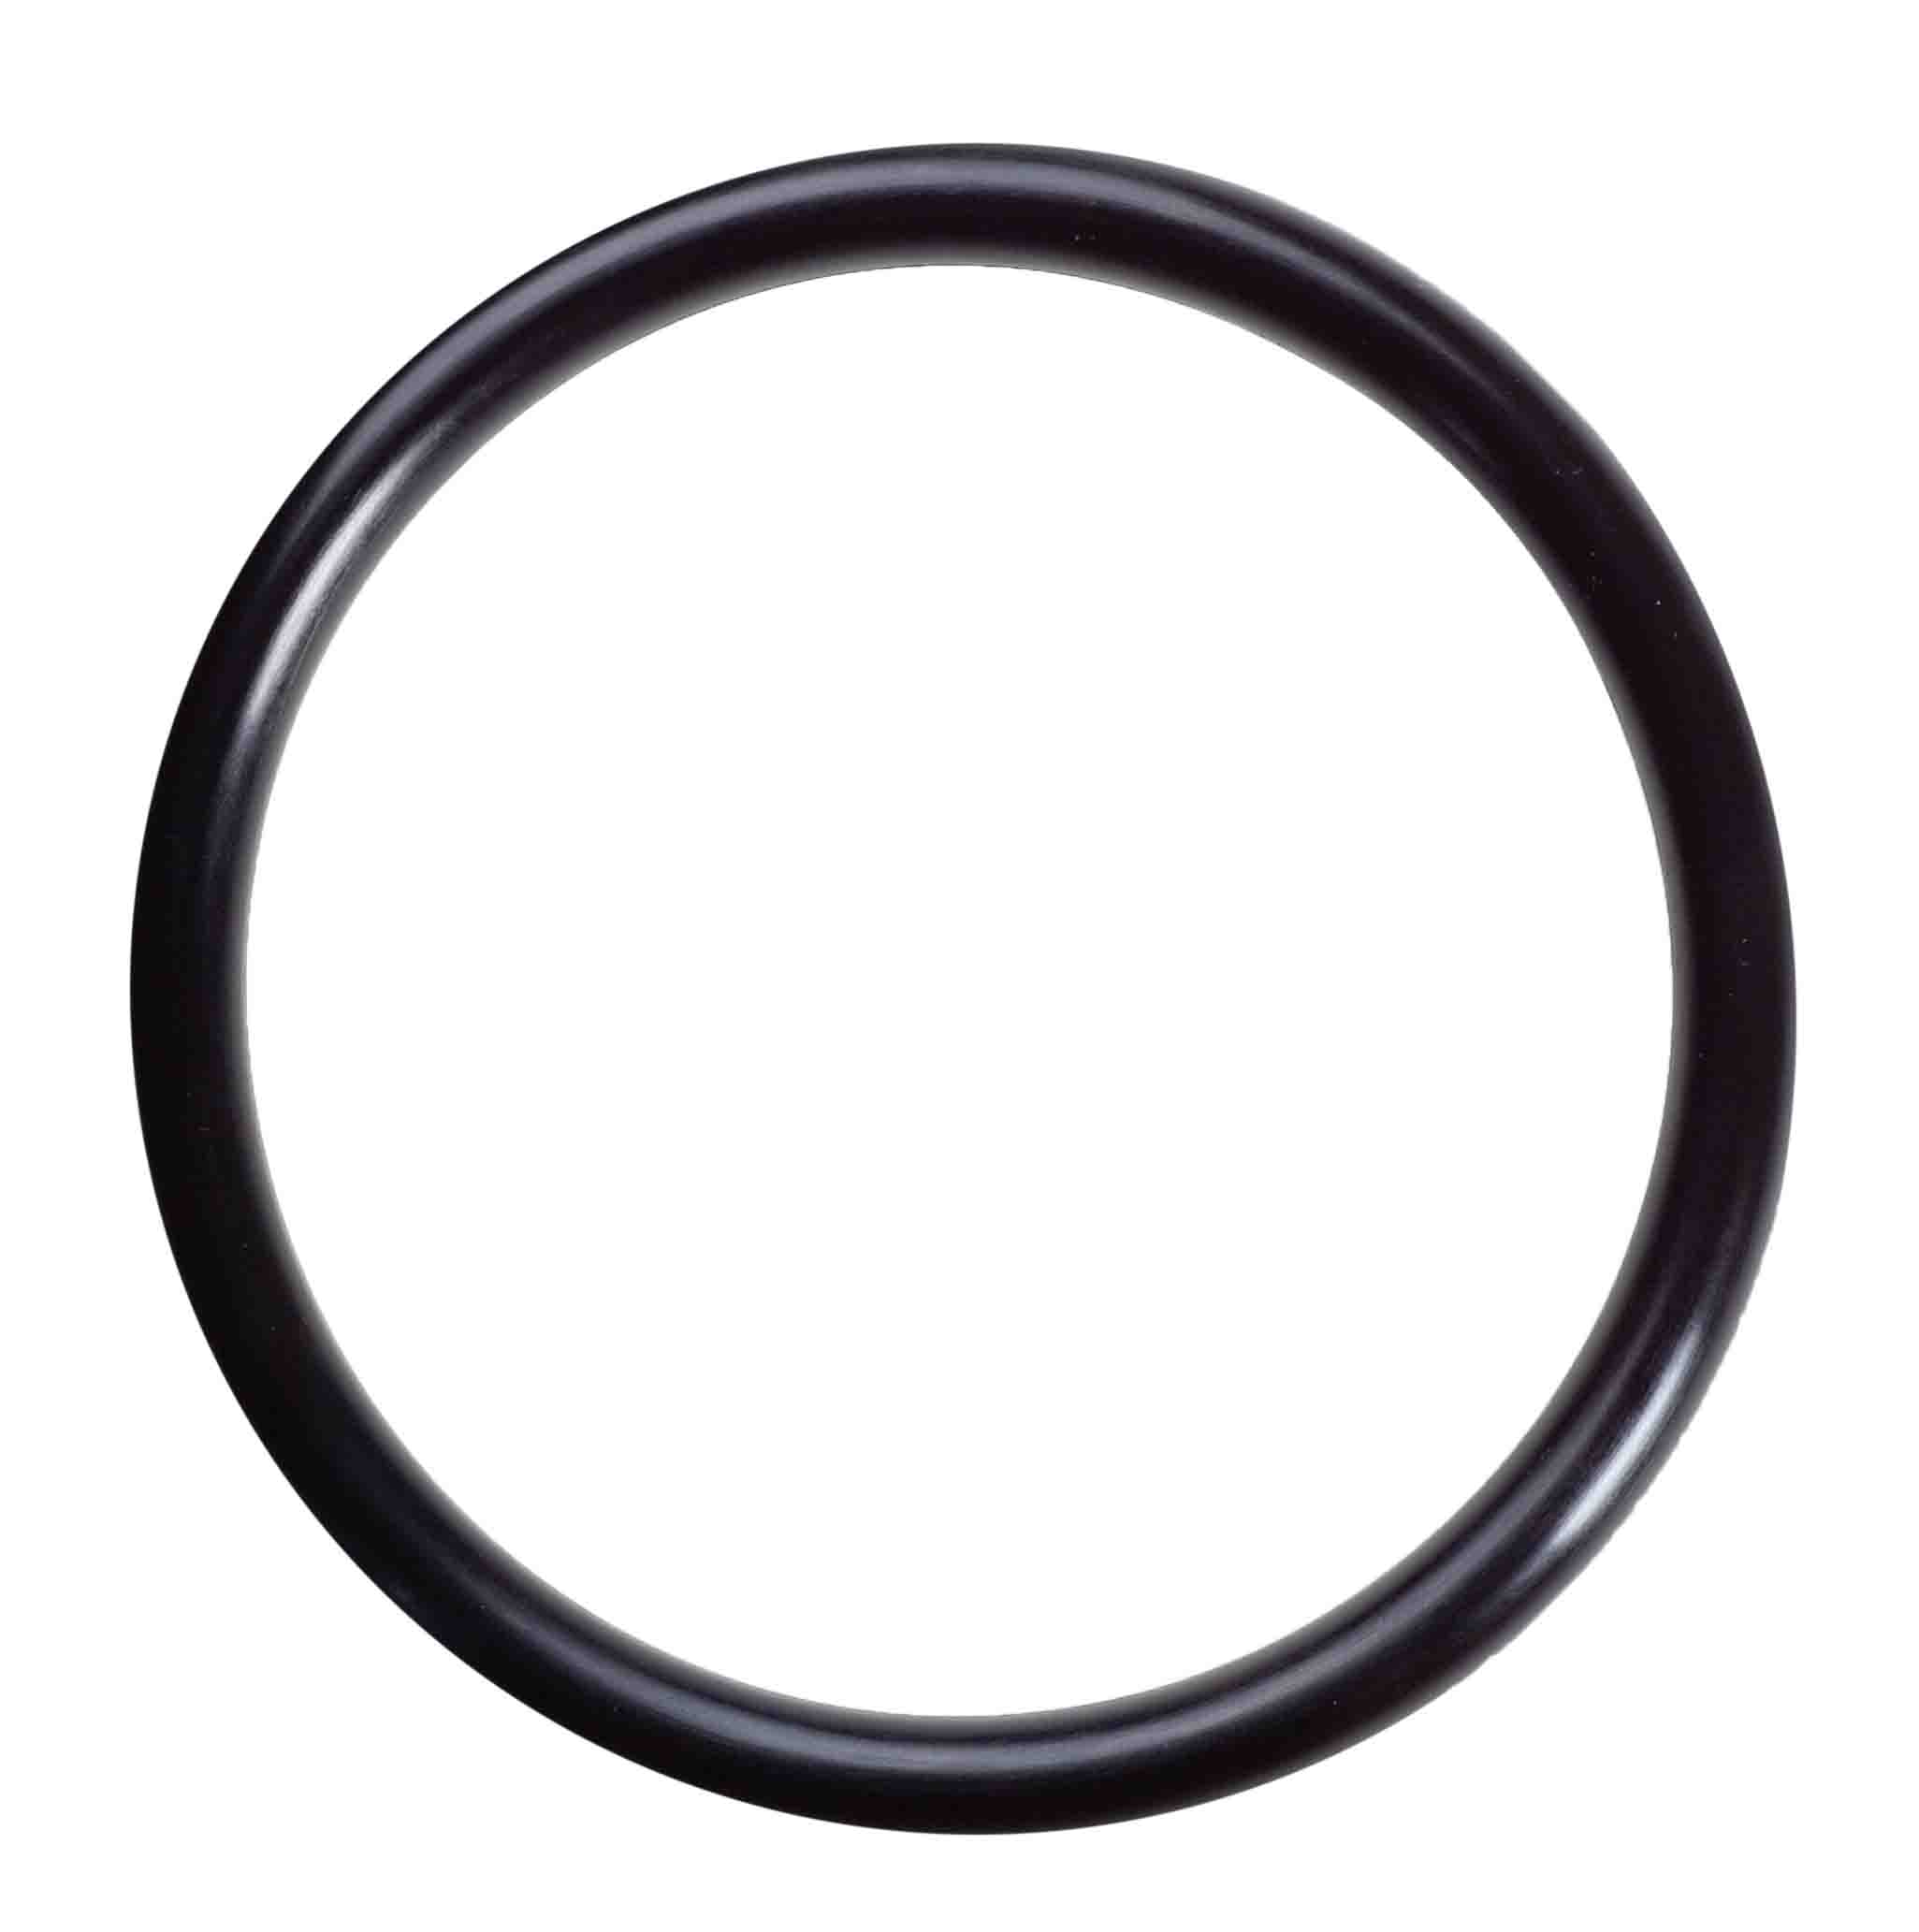 06808 - Housing O-rings for Nanopure II system-  DISCONTINUED